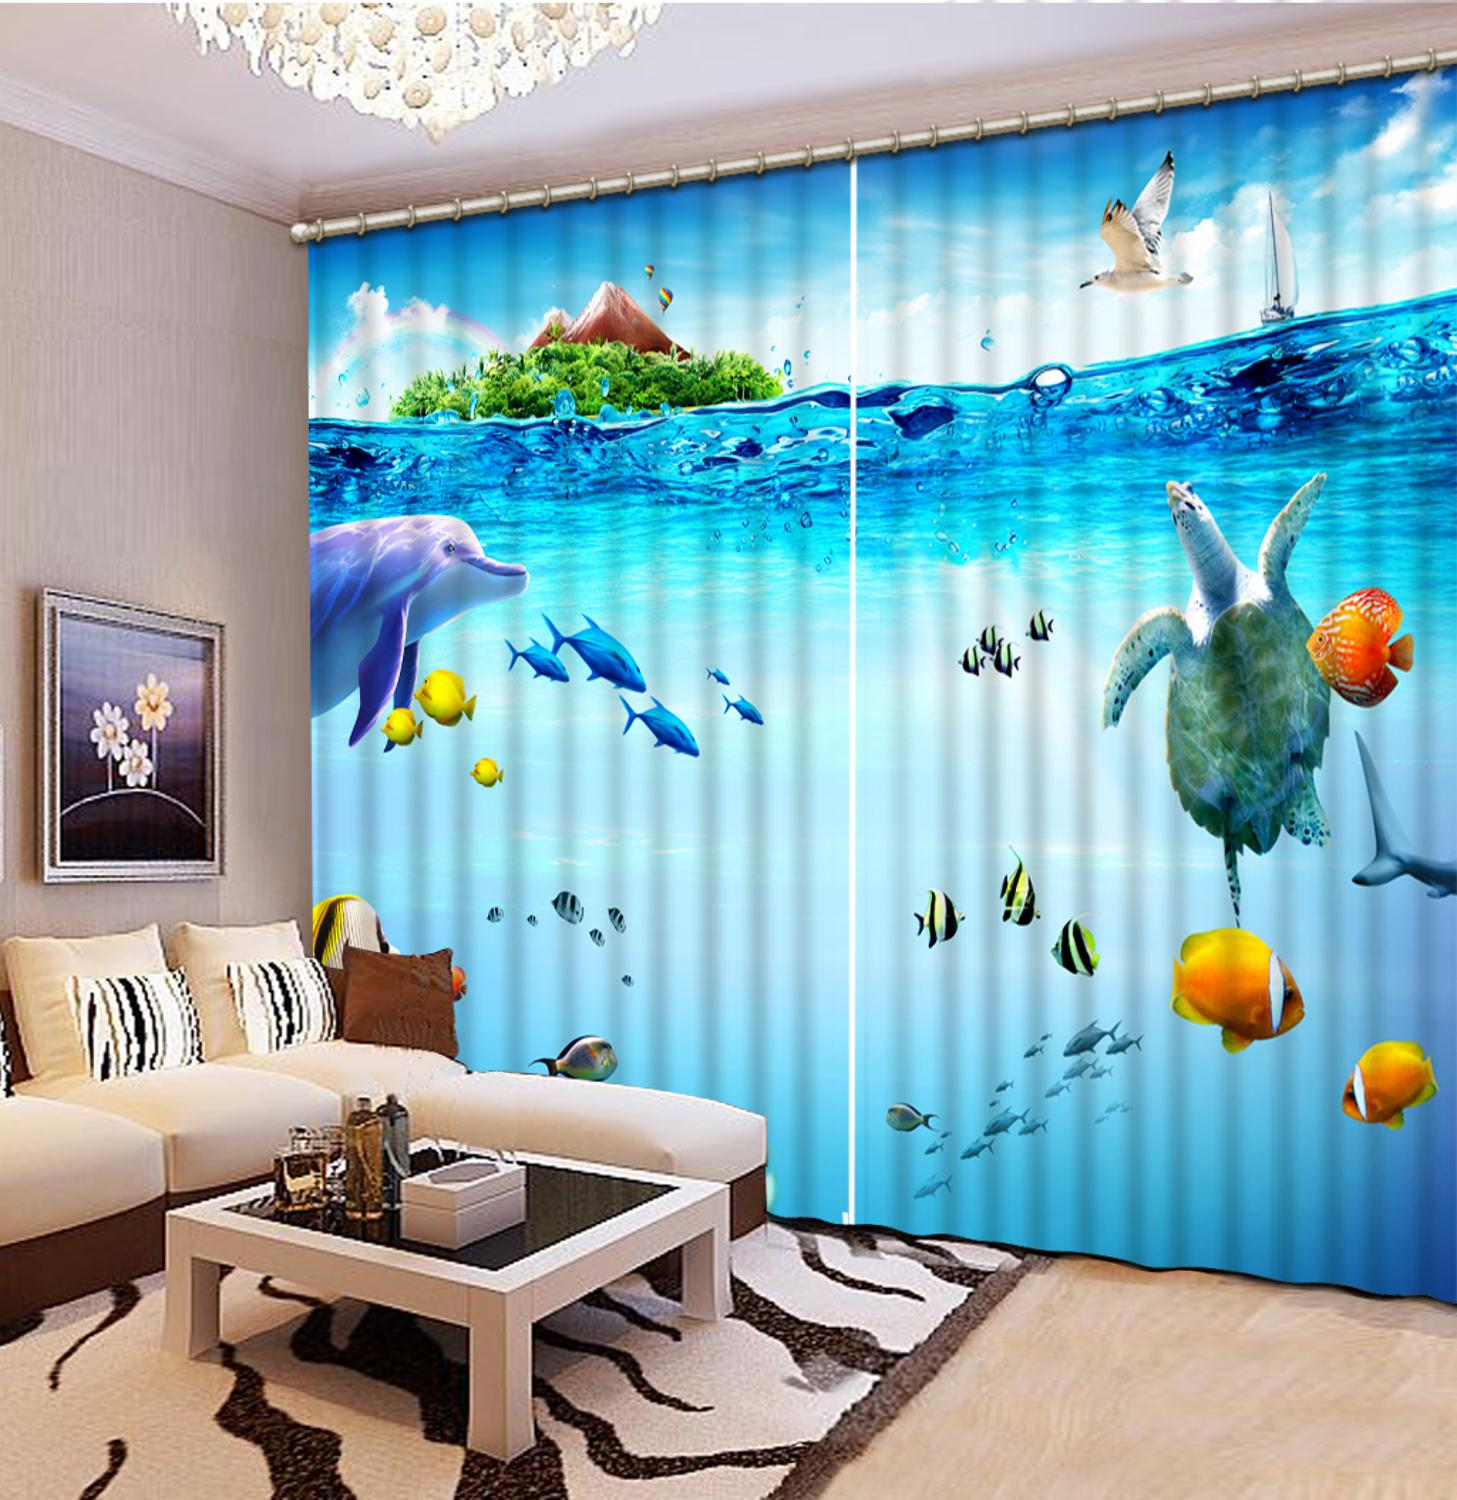 customize Ocean World curtains for bedroom living room windows high quality curtaincustomize Ocean World curtains for bedroom living room windows high quality curtain